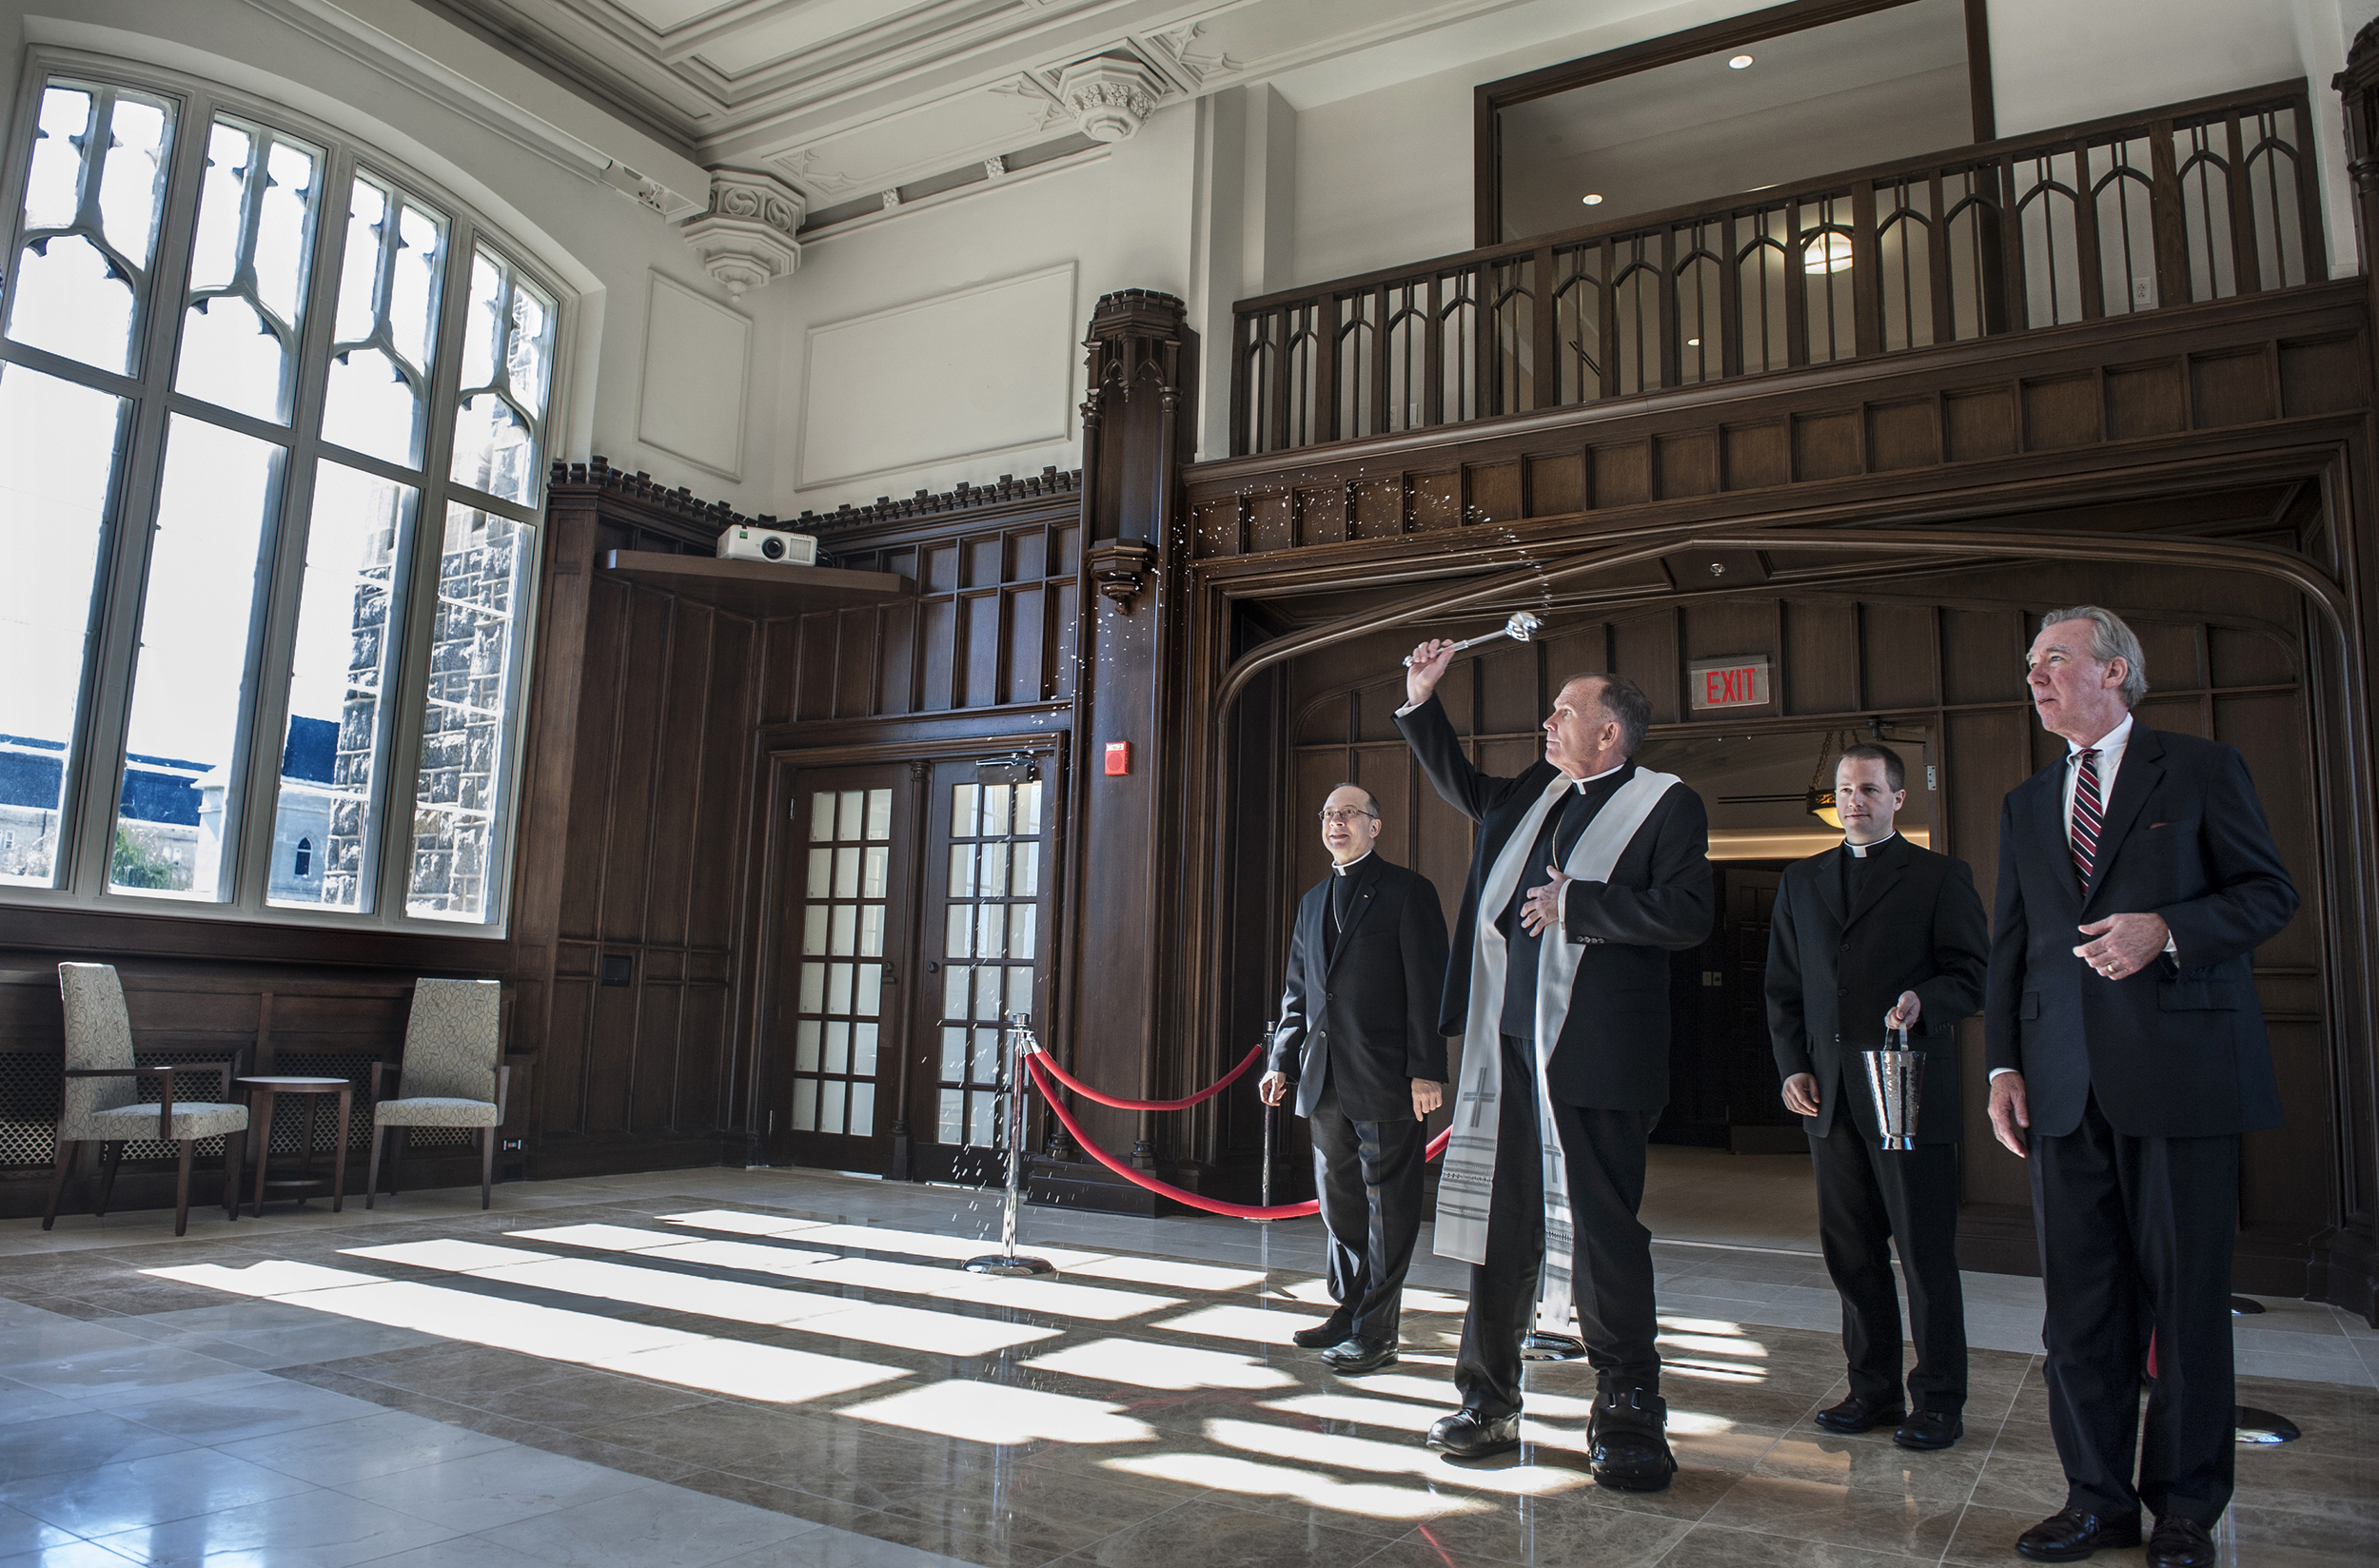 """Bishop David M O'Connell of Trenton blesses Heritage Hall during a dedication ceremony of the newly restored Father O'Connell Hall named in his honor. The former president of The Catholic University of America remarked """"My friends, thank you for doing this while I am alive."""""""